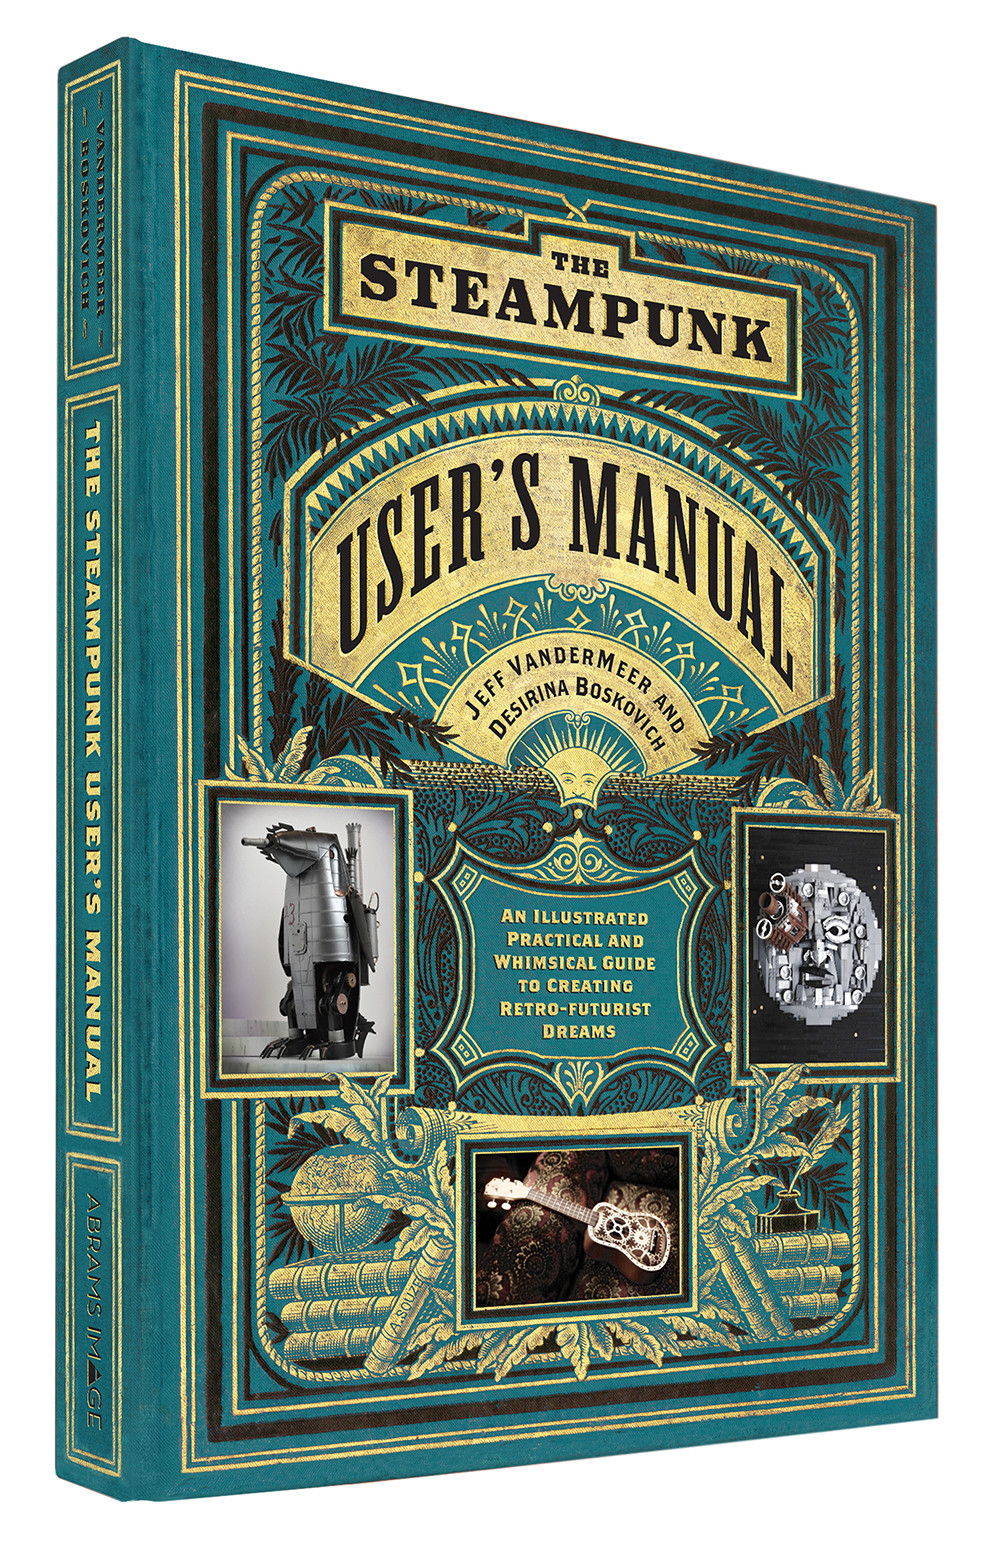 The Steampunk User's Manual; beautiful graphic design by Galen Smith, designer of the week